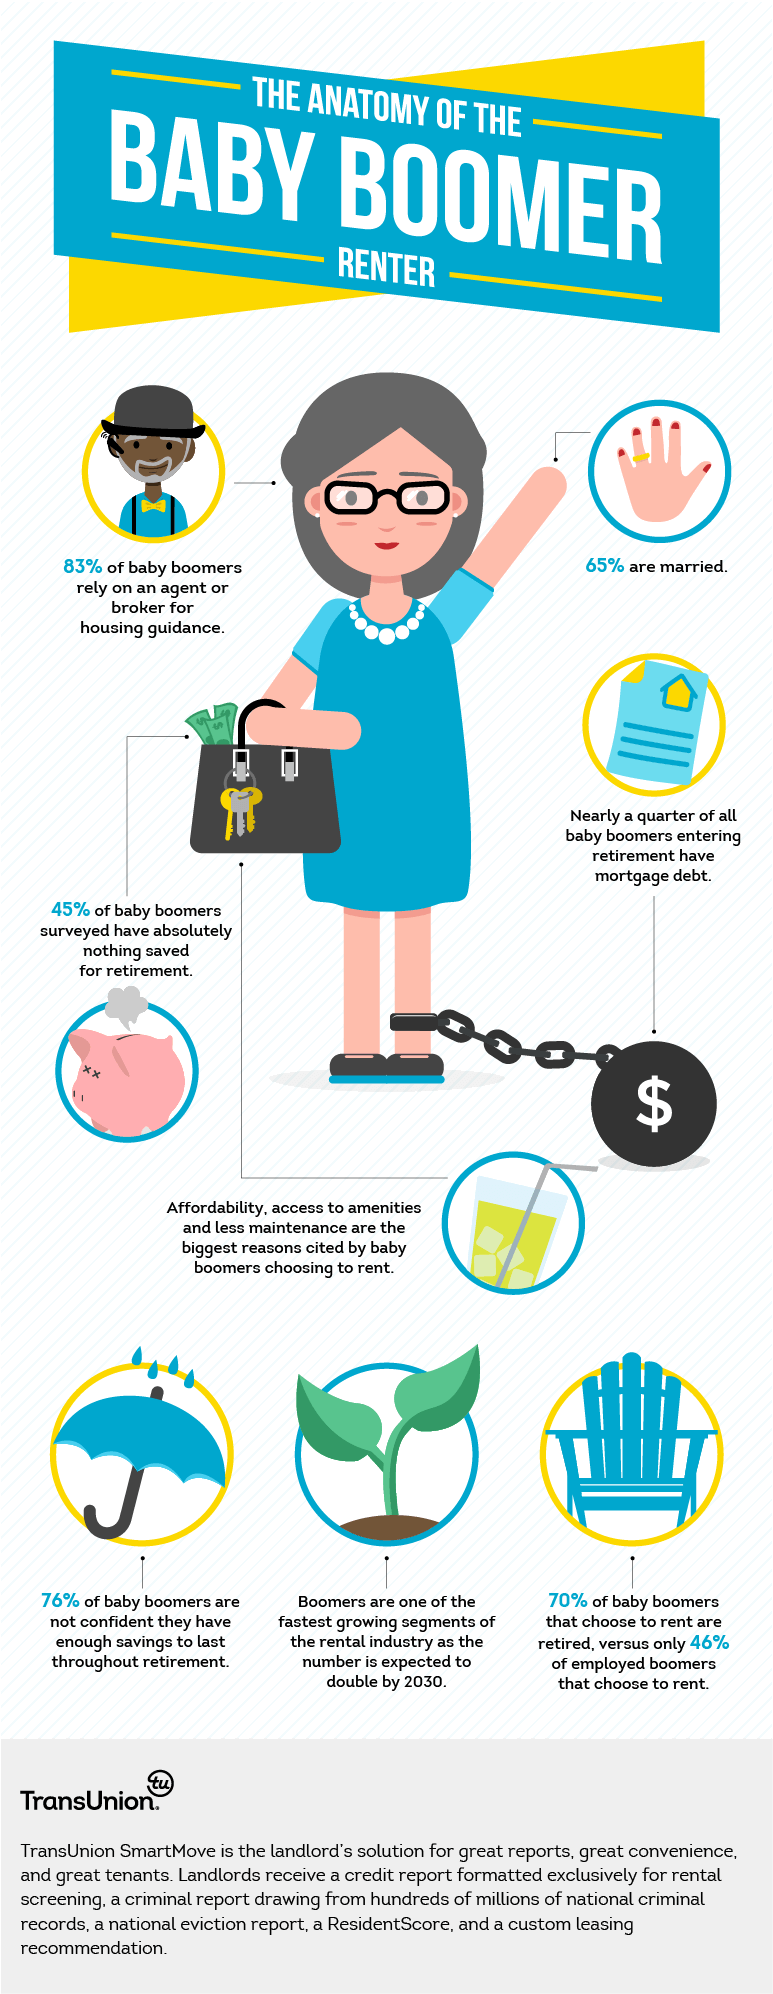 The Anatomy Of A Baby Boomer Renter [INFOGRAPHIC] | SmartMove